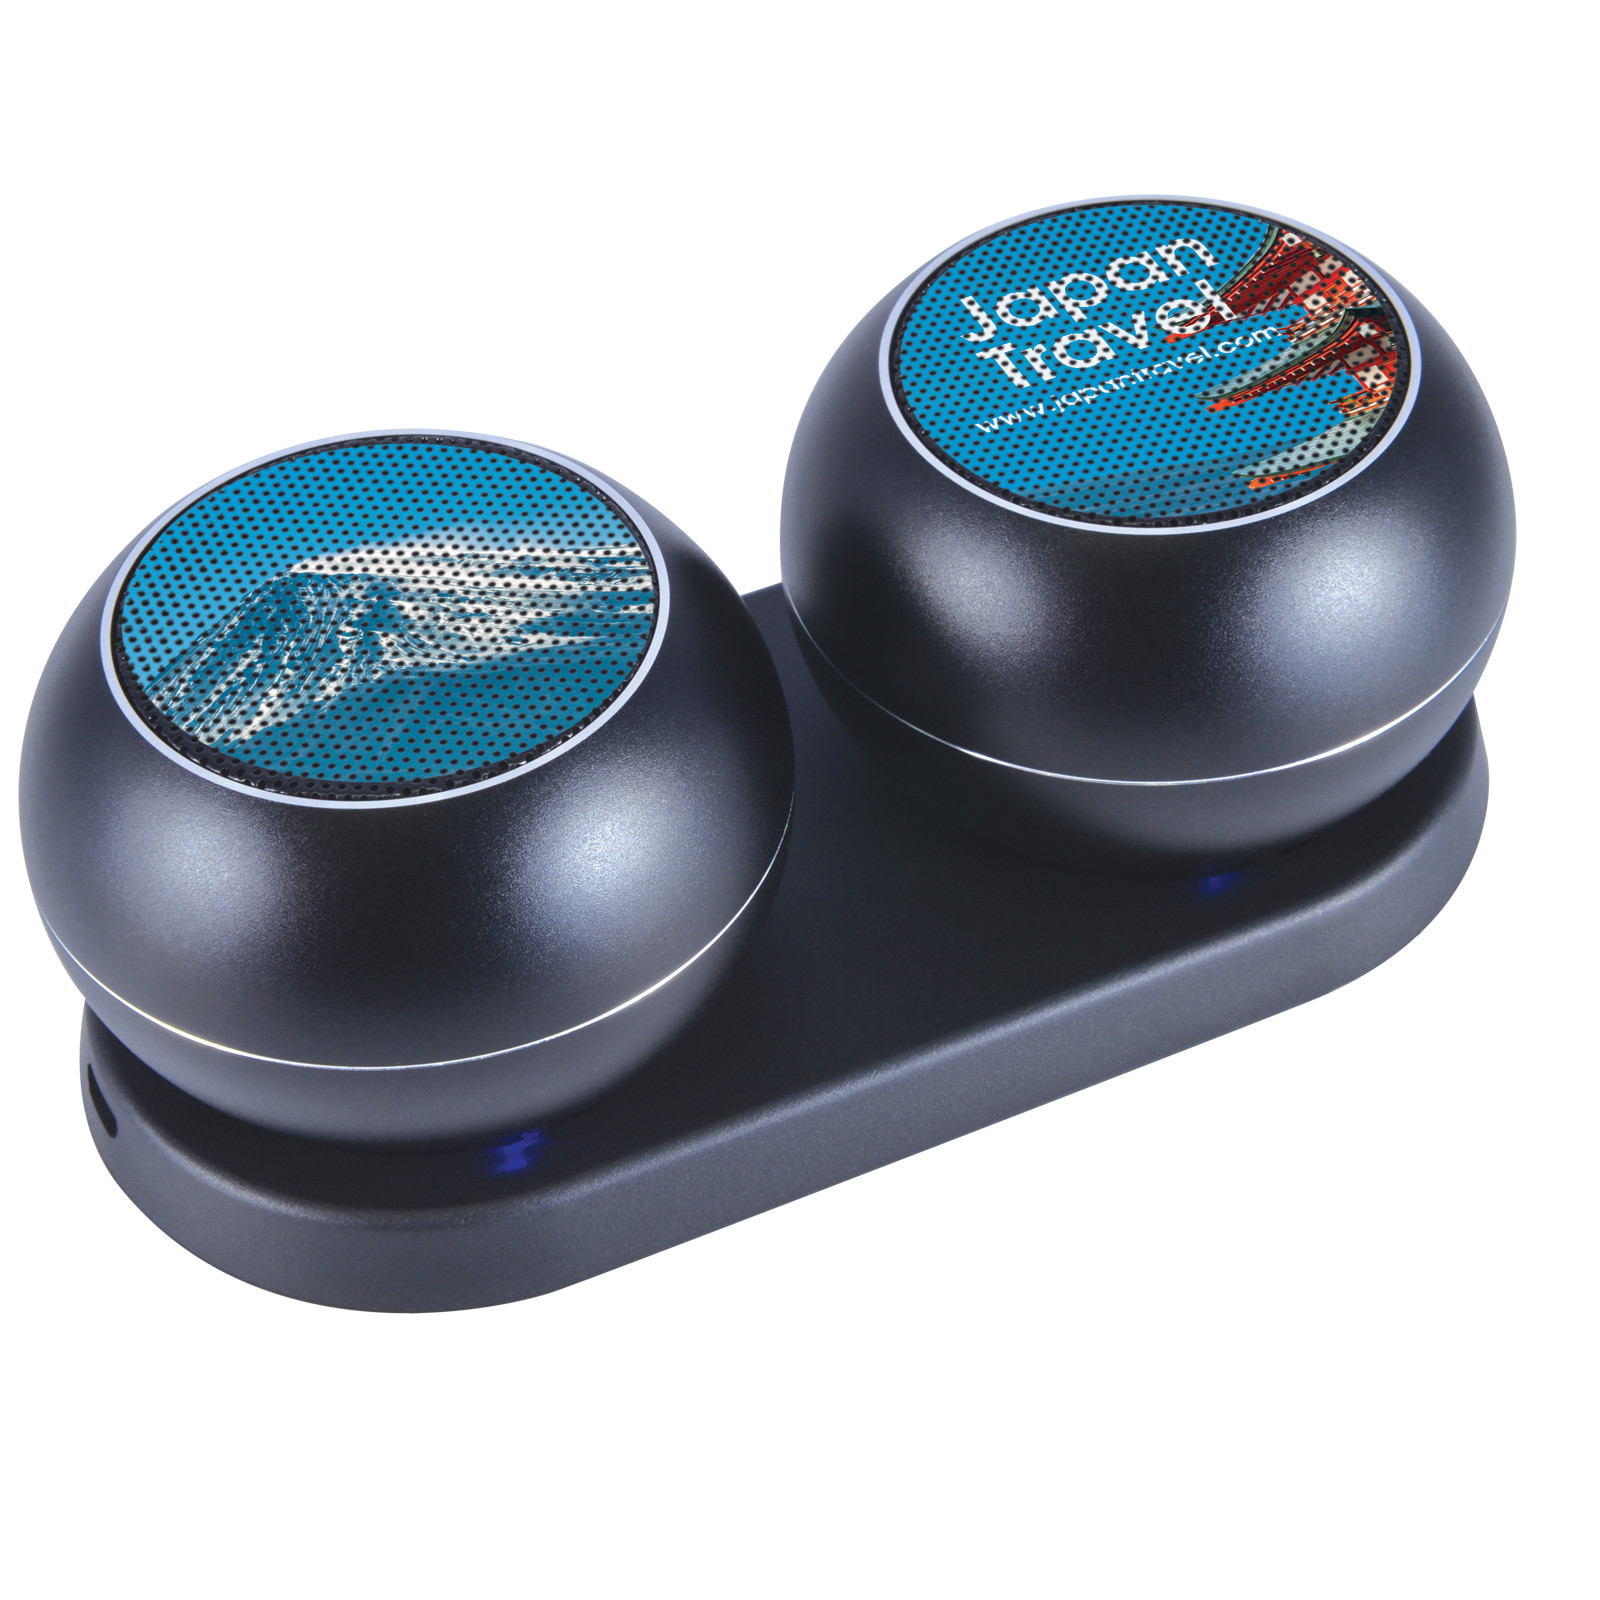 Promotional Product Harmony Bluetooth Speaker Set